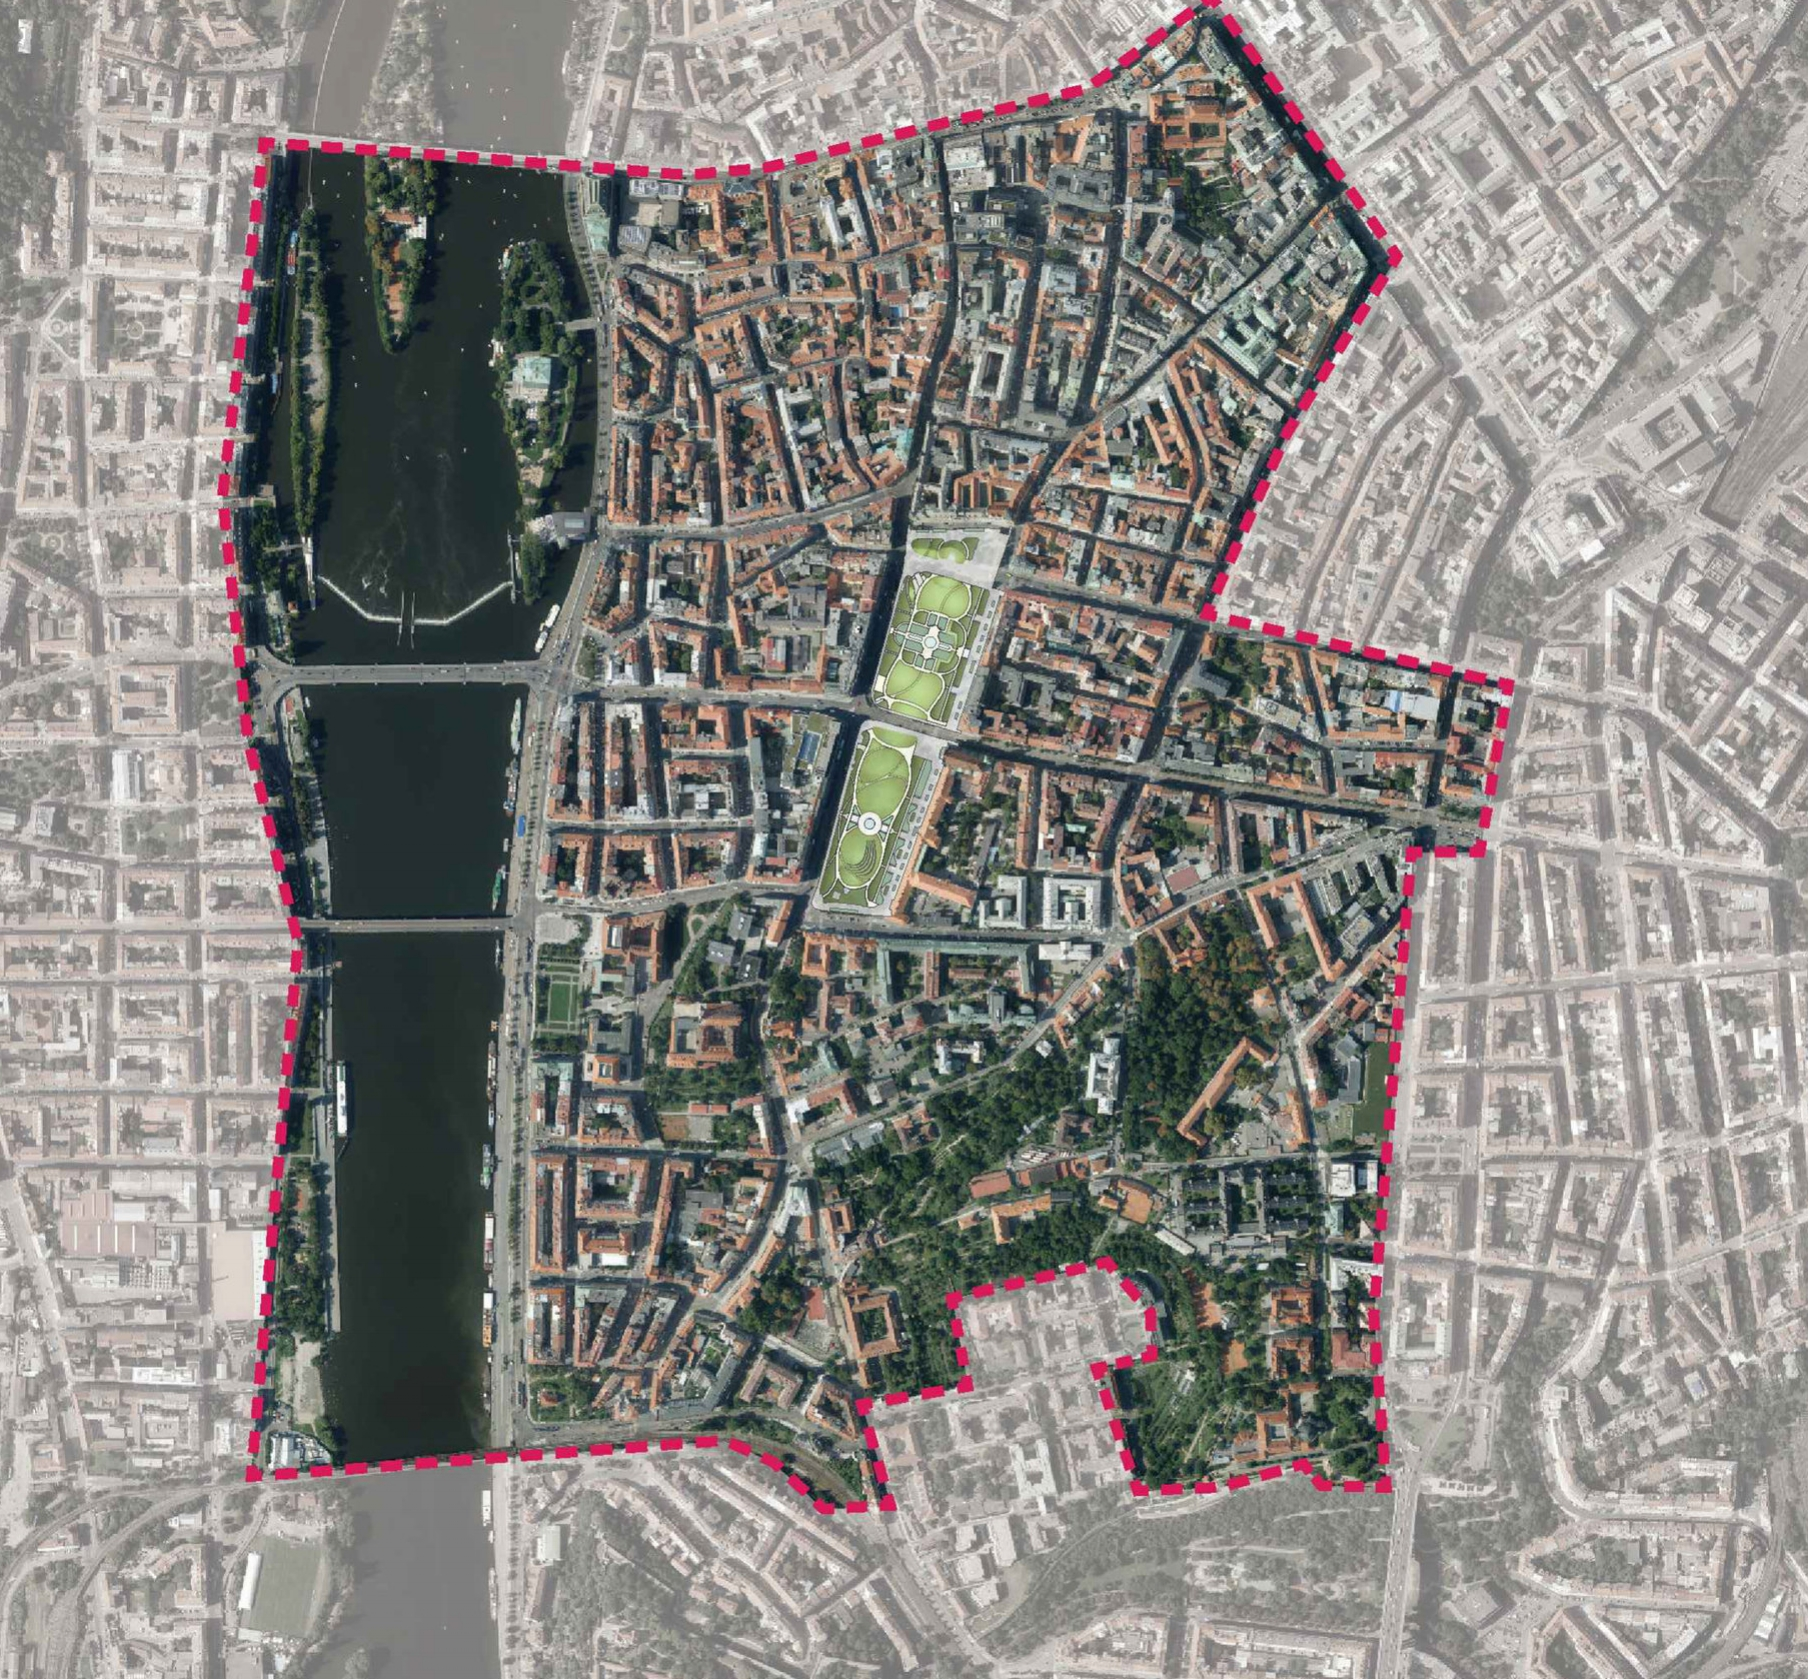 Charles square shown within central Prague (1:10000)